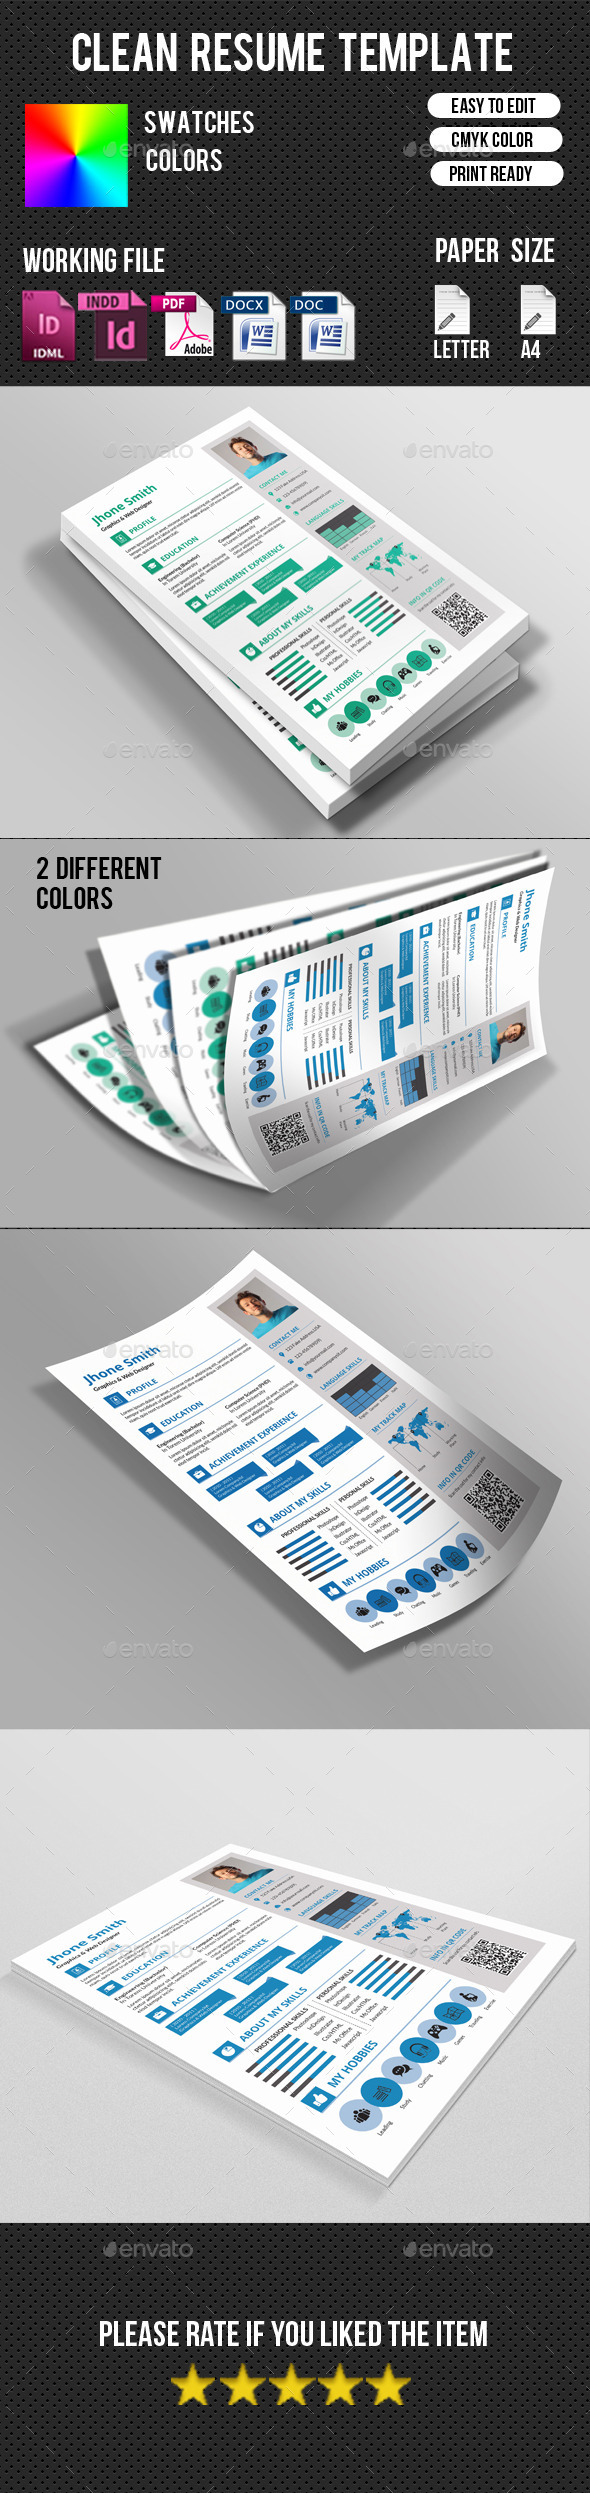 GraphicRiver Clean Resume Template-V15 10737665